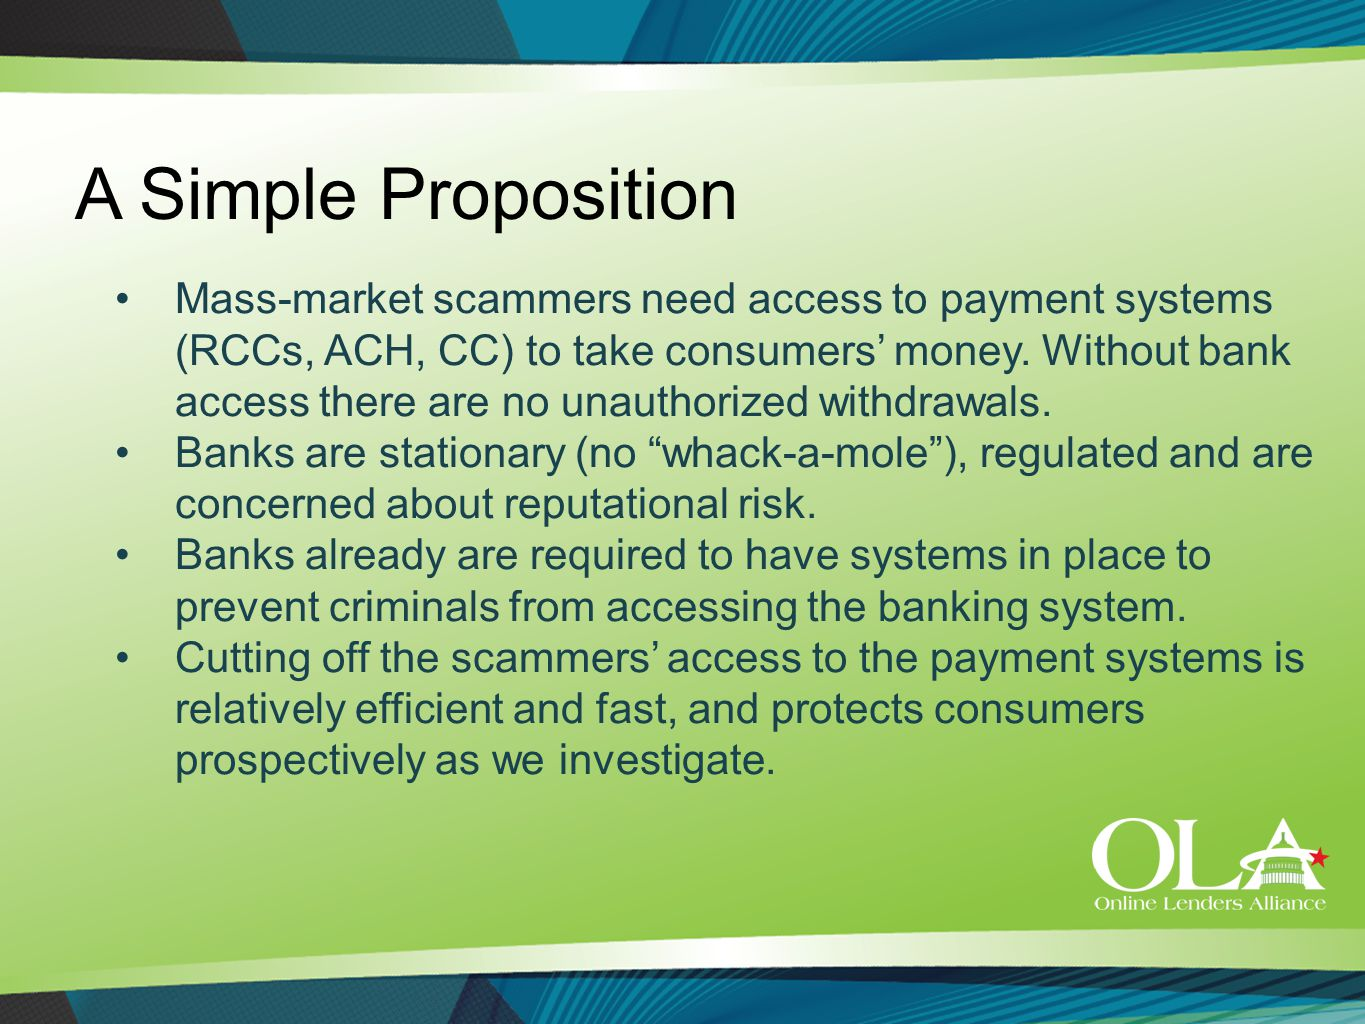 A Simple Proposition Mass-market scammers need access to payment systems (RCCs, ACH, CC) to take consumers' money. Without bank access there are no un